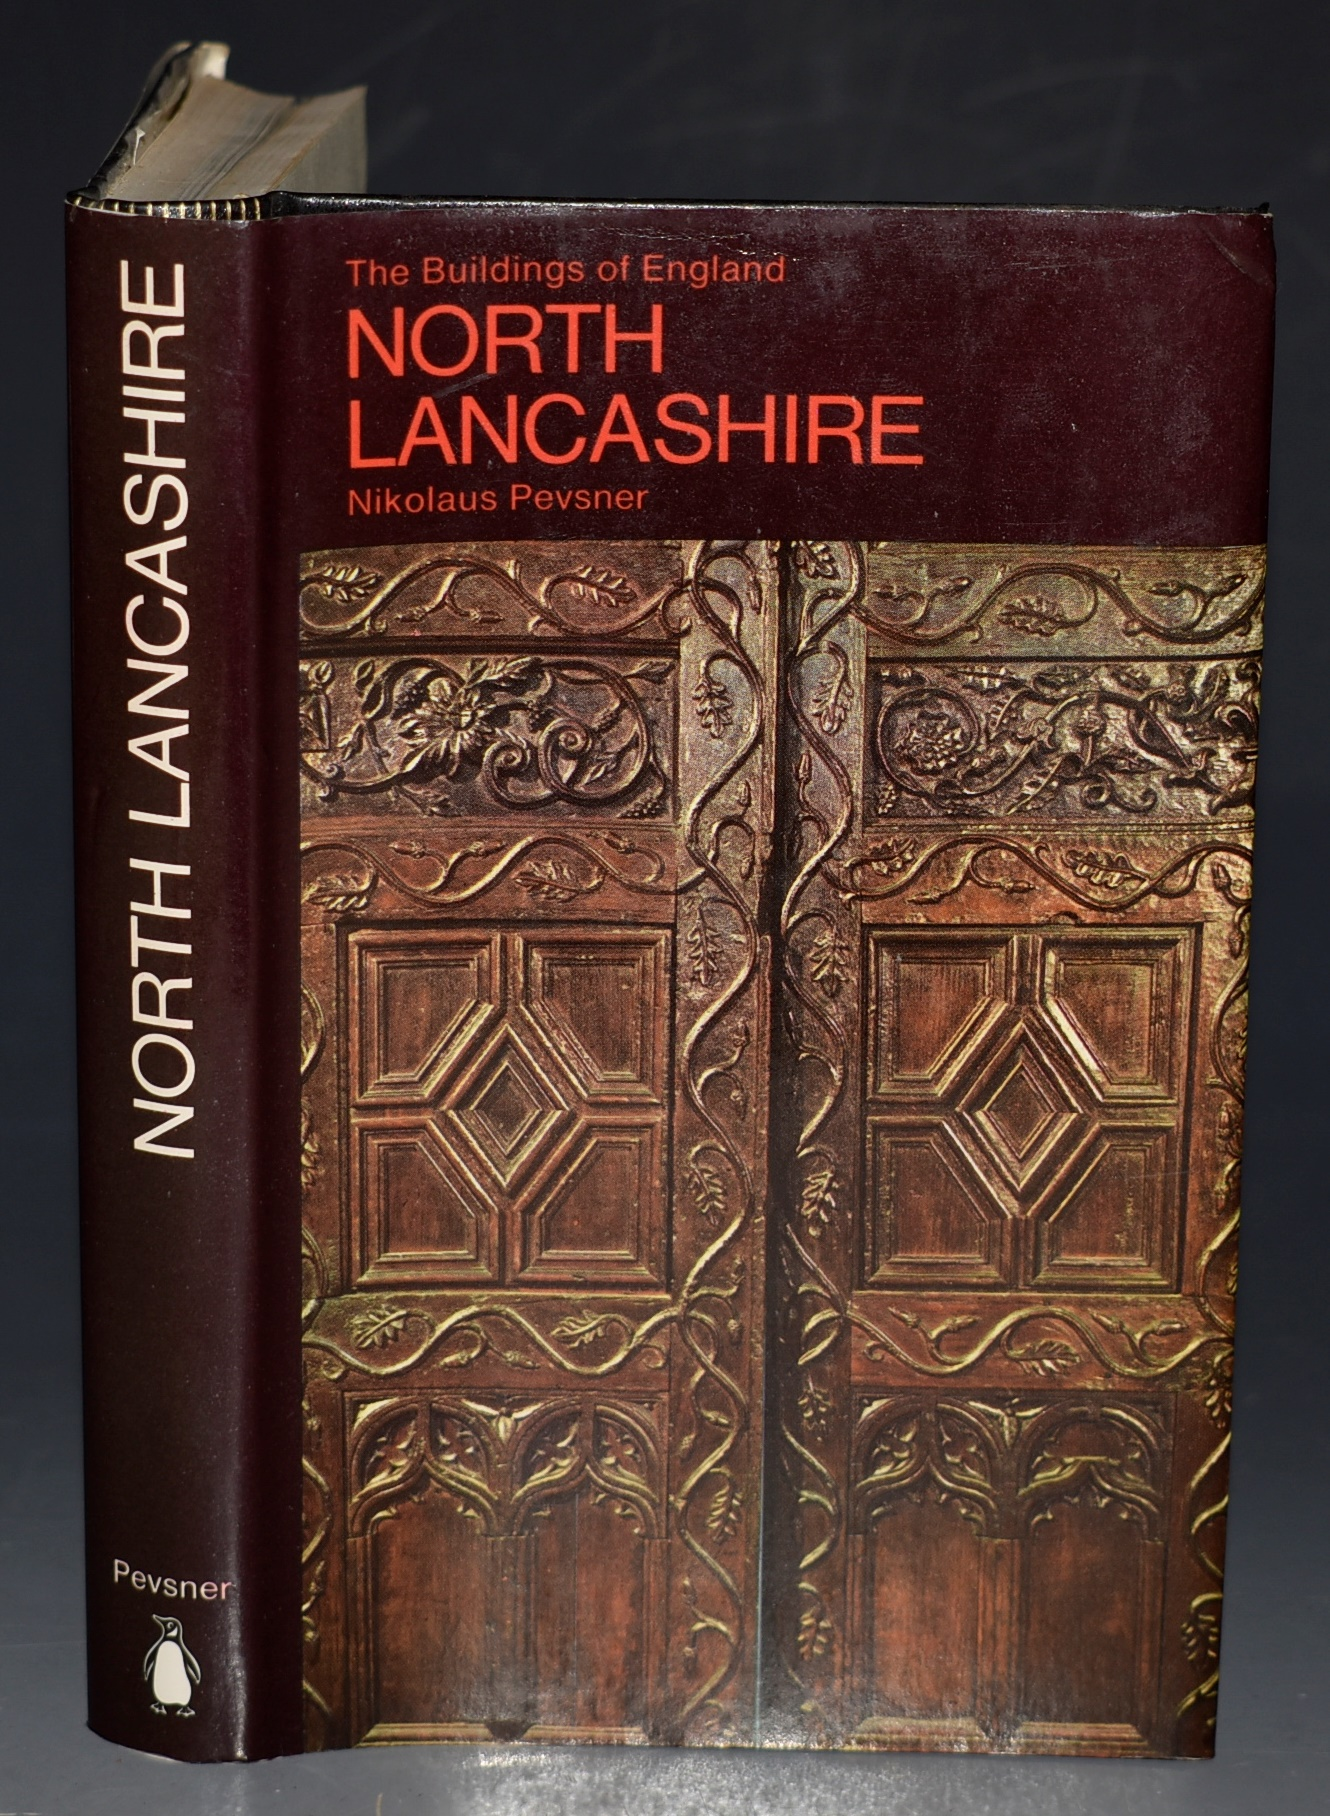 Image for North Lancashire. The Buildings of England. David Verey.